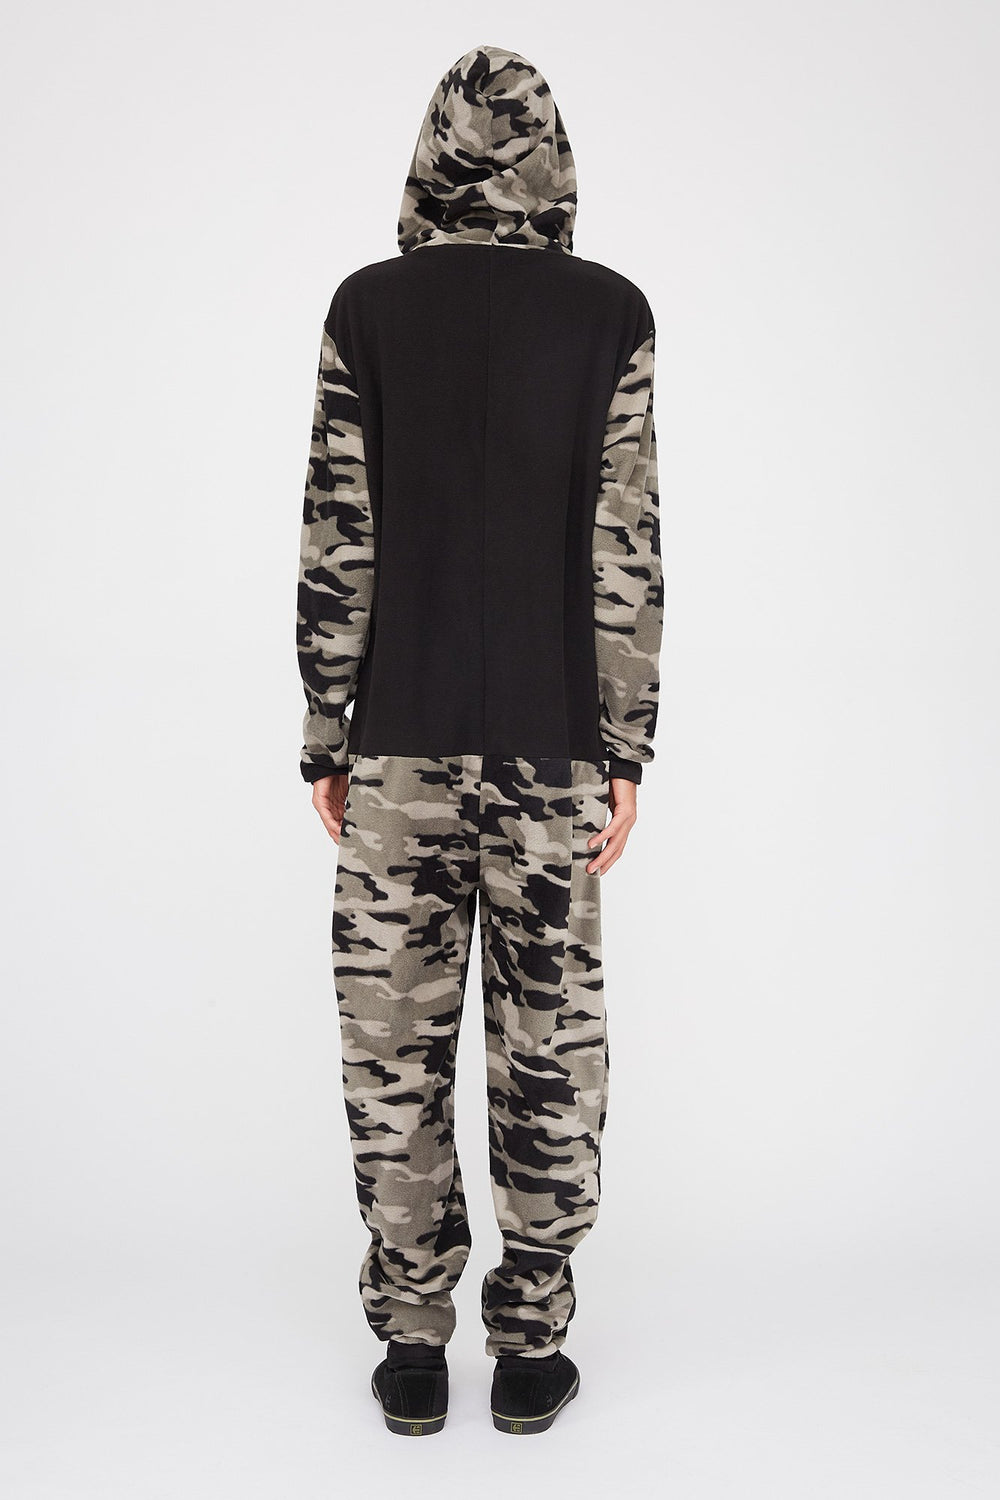 Paintball Onesie Camouflage